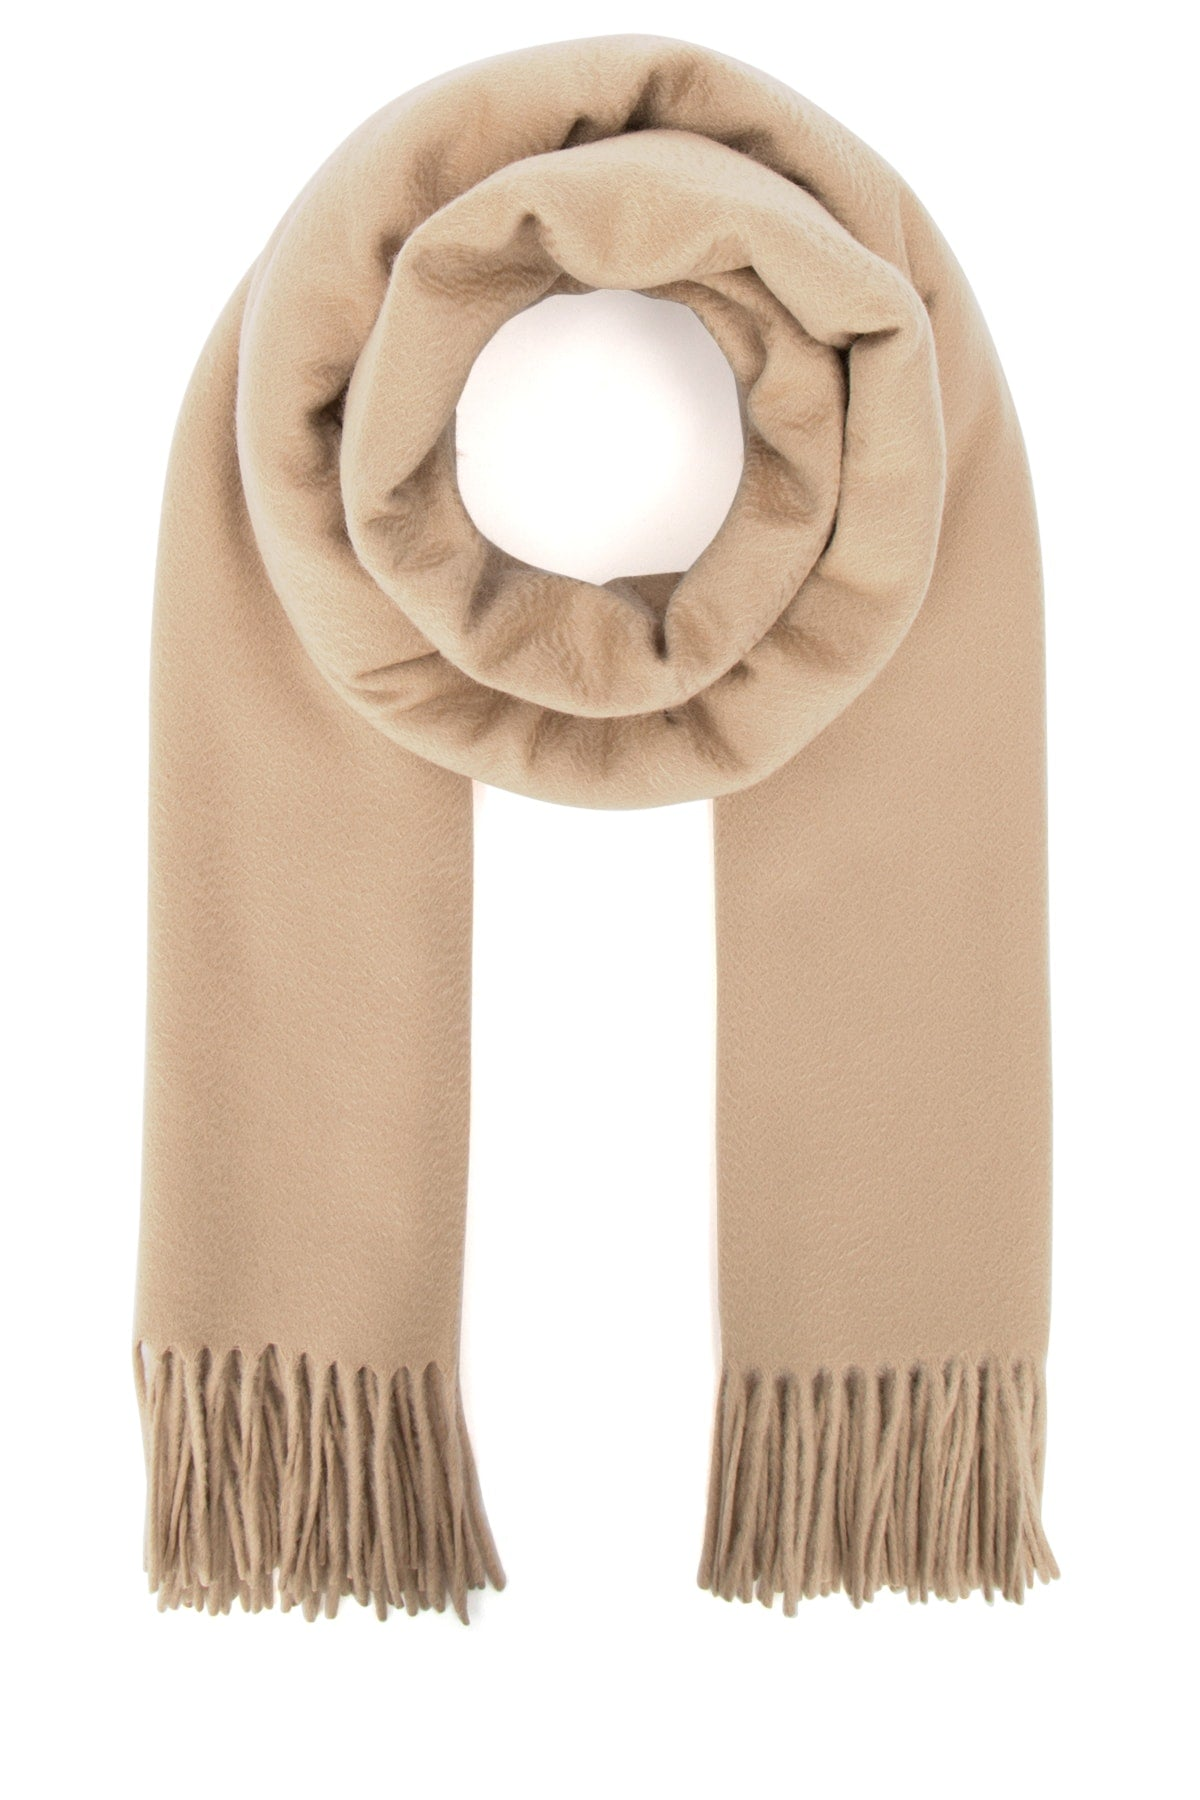 Loro Piana Accessories LORO PIANA FRINGED SCARF